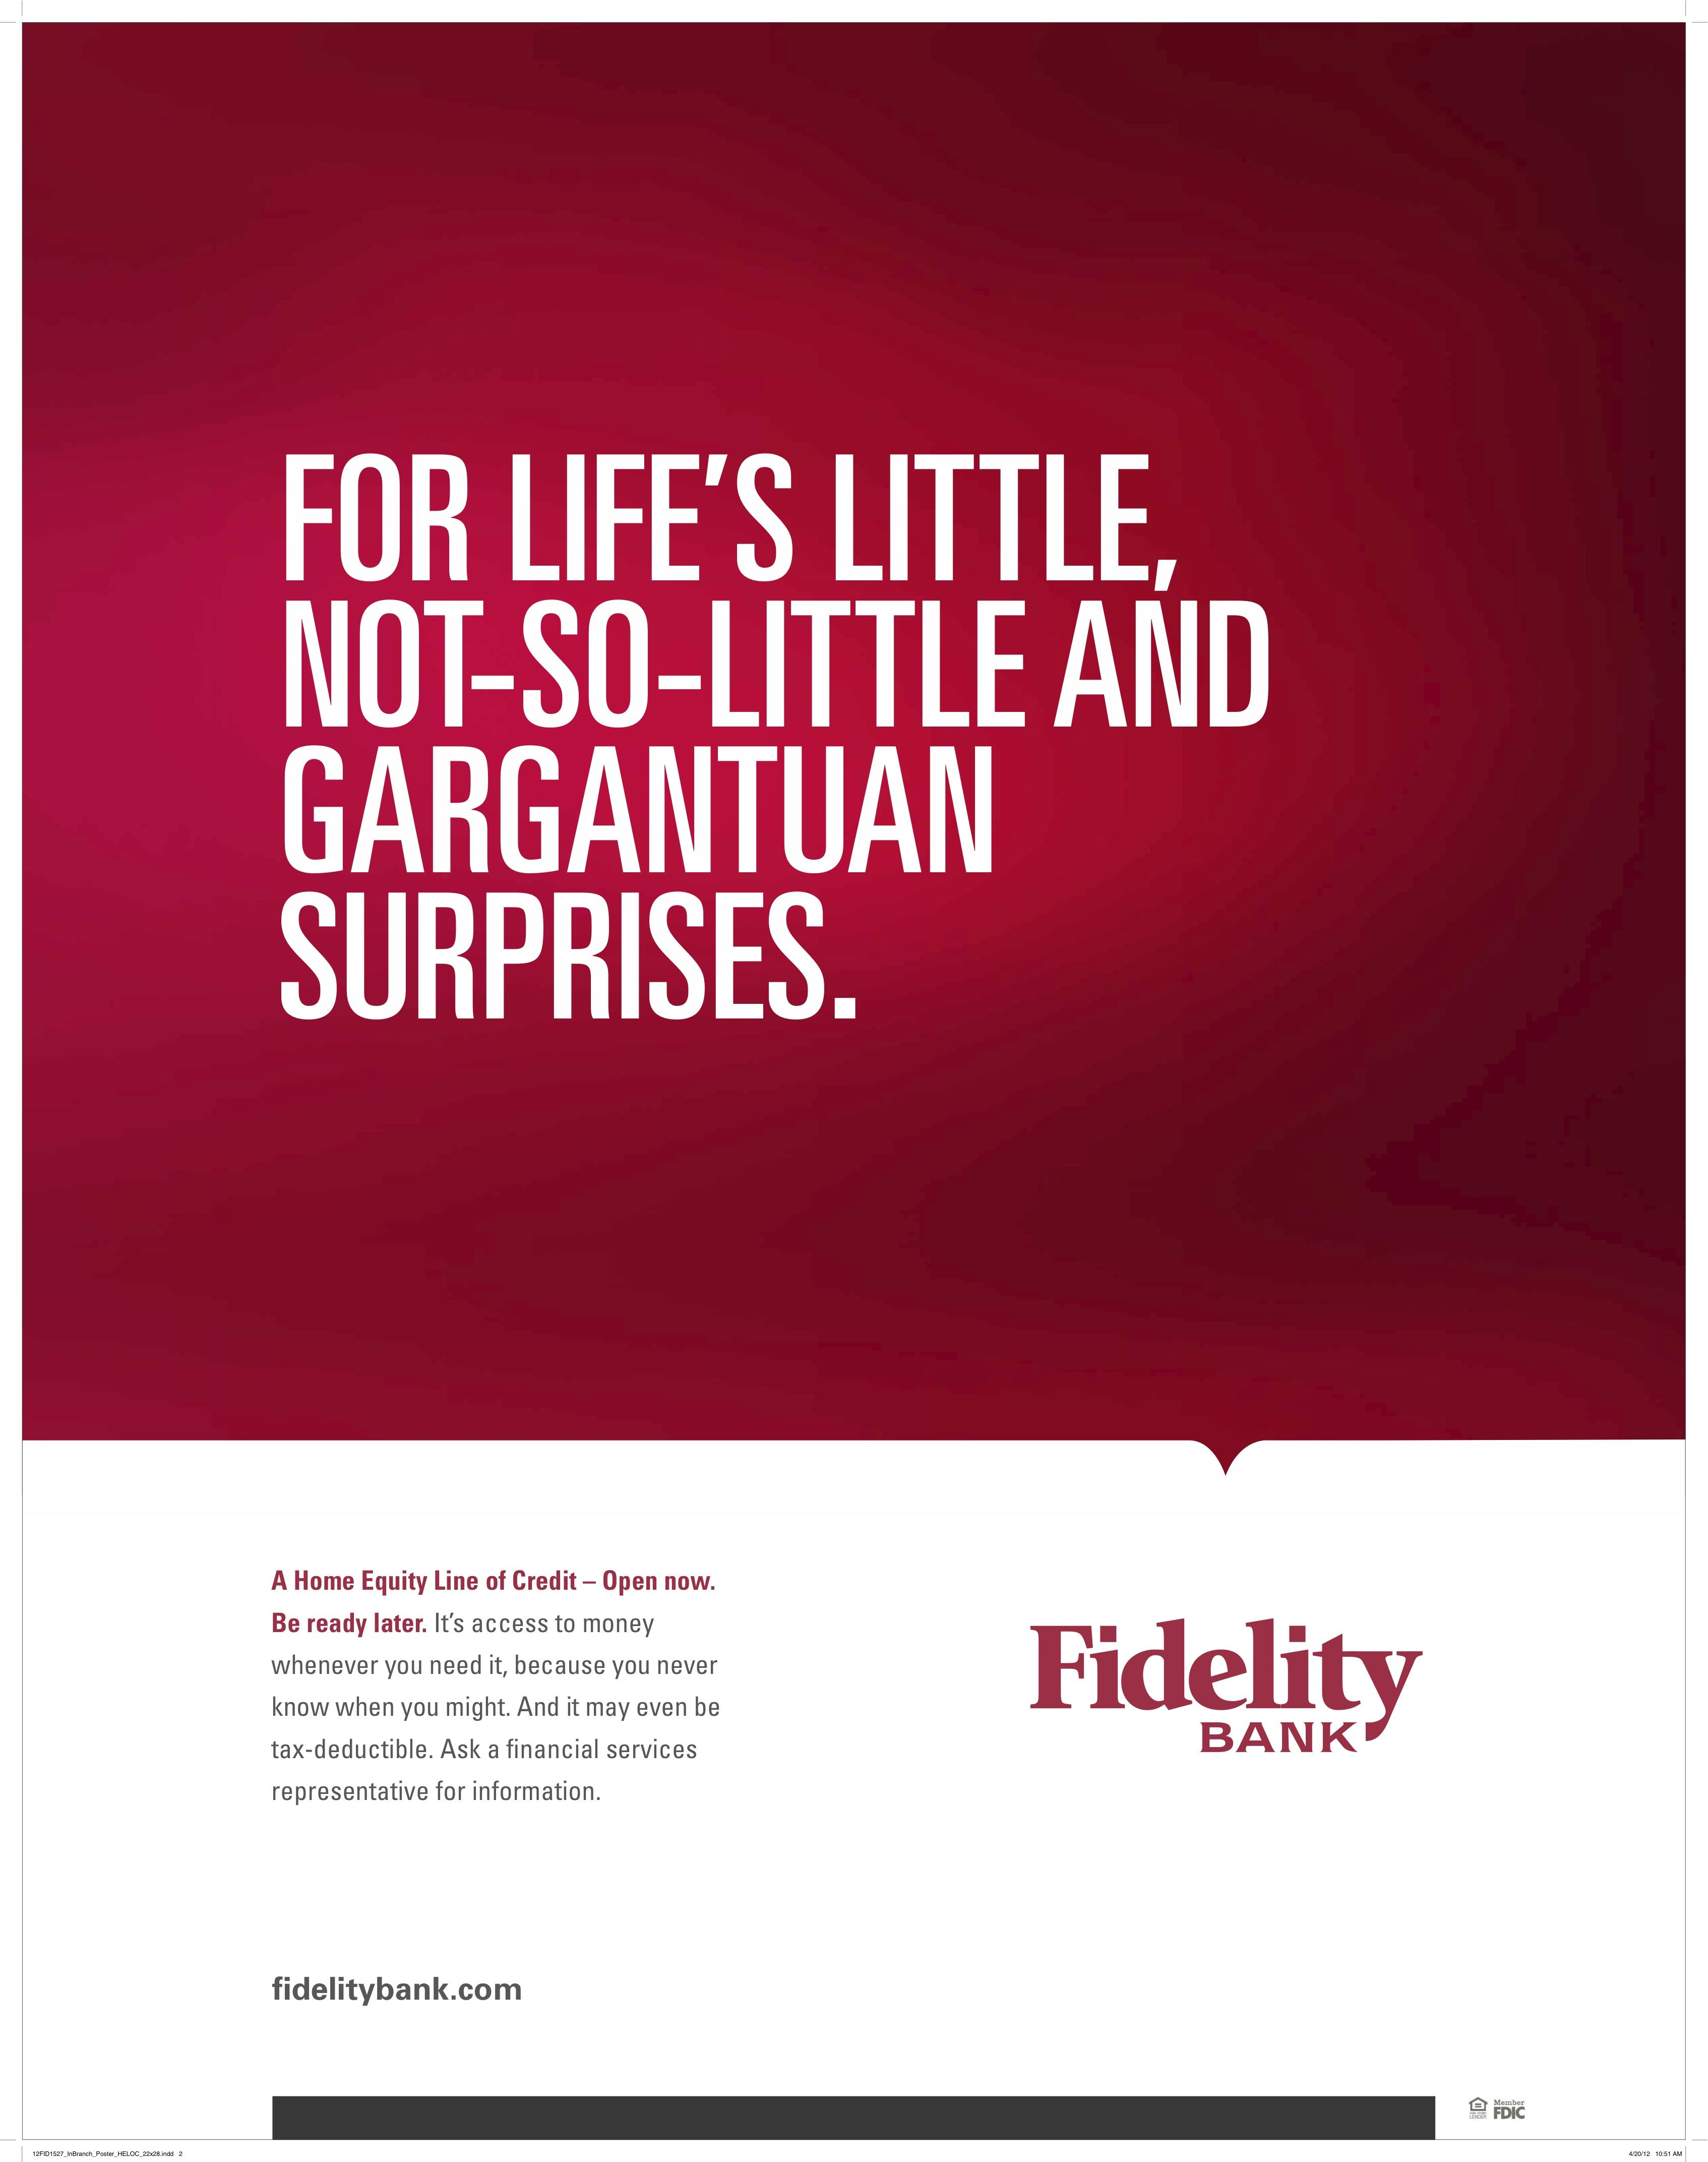 Fidelity Bank Poster, HELOC Home equity line, Line of